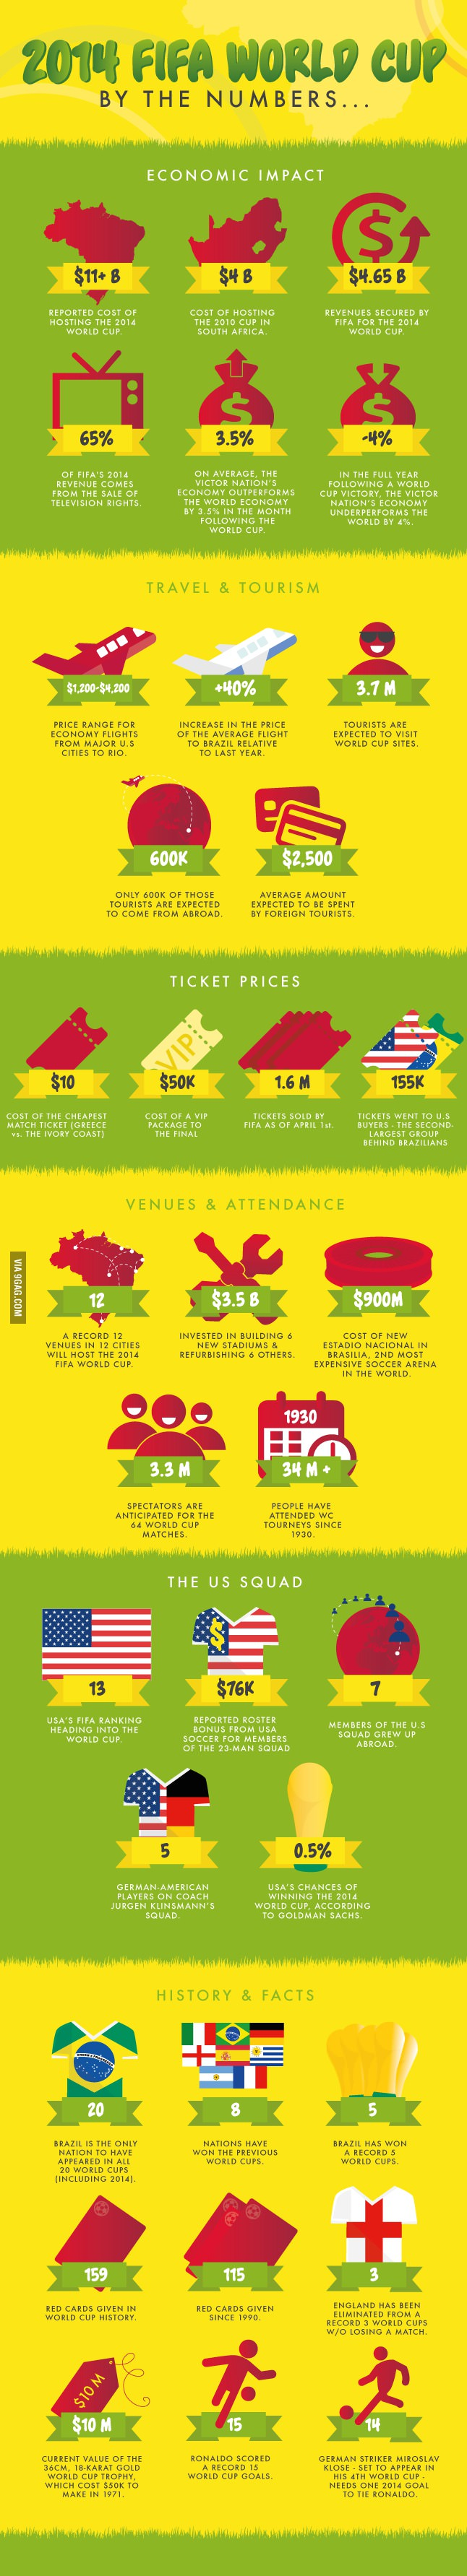 world cup 2014 infographic